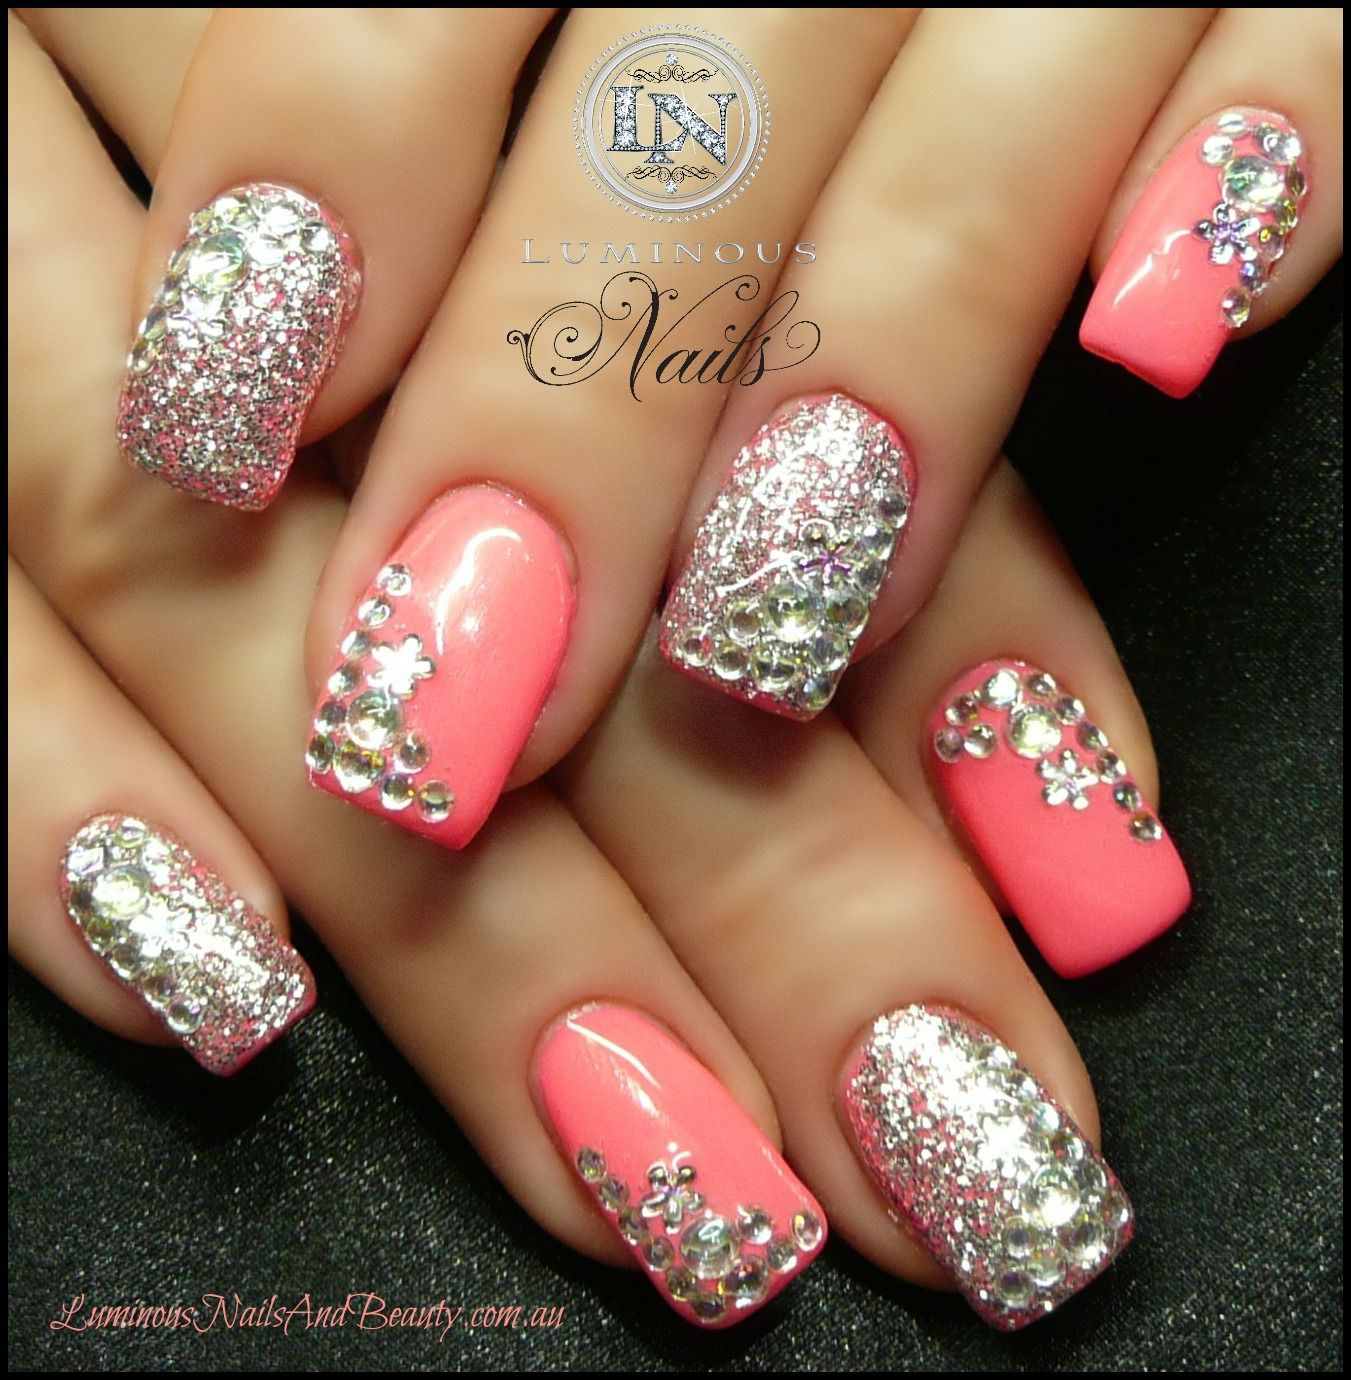 luminous+nails+and+beauty,+gold+coast+queensland.+acrylic+nails,+